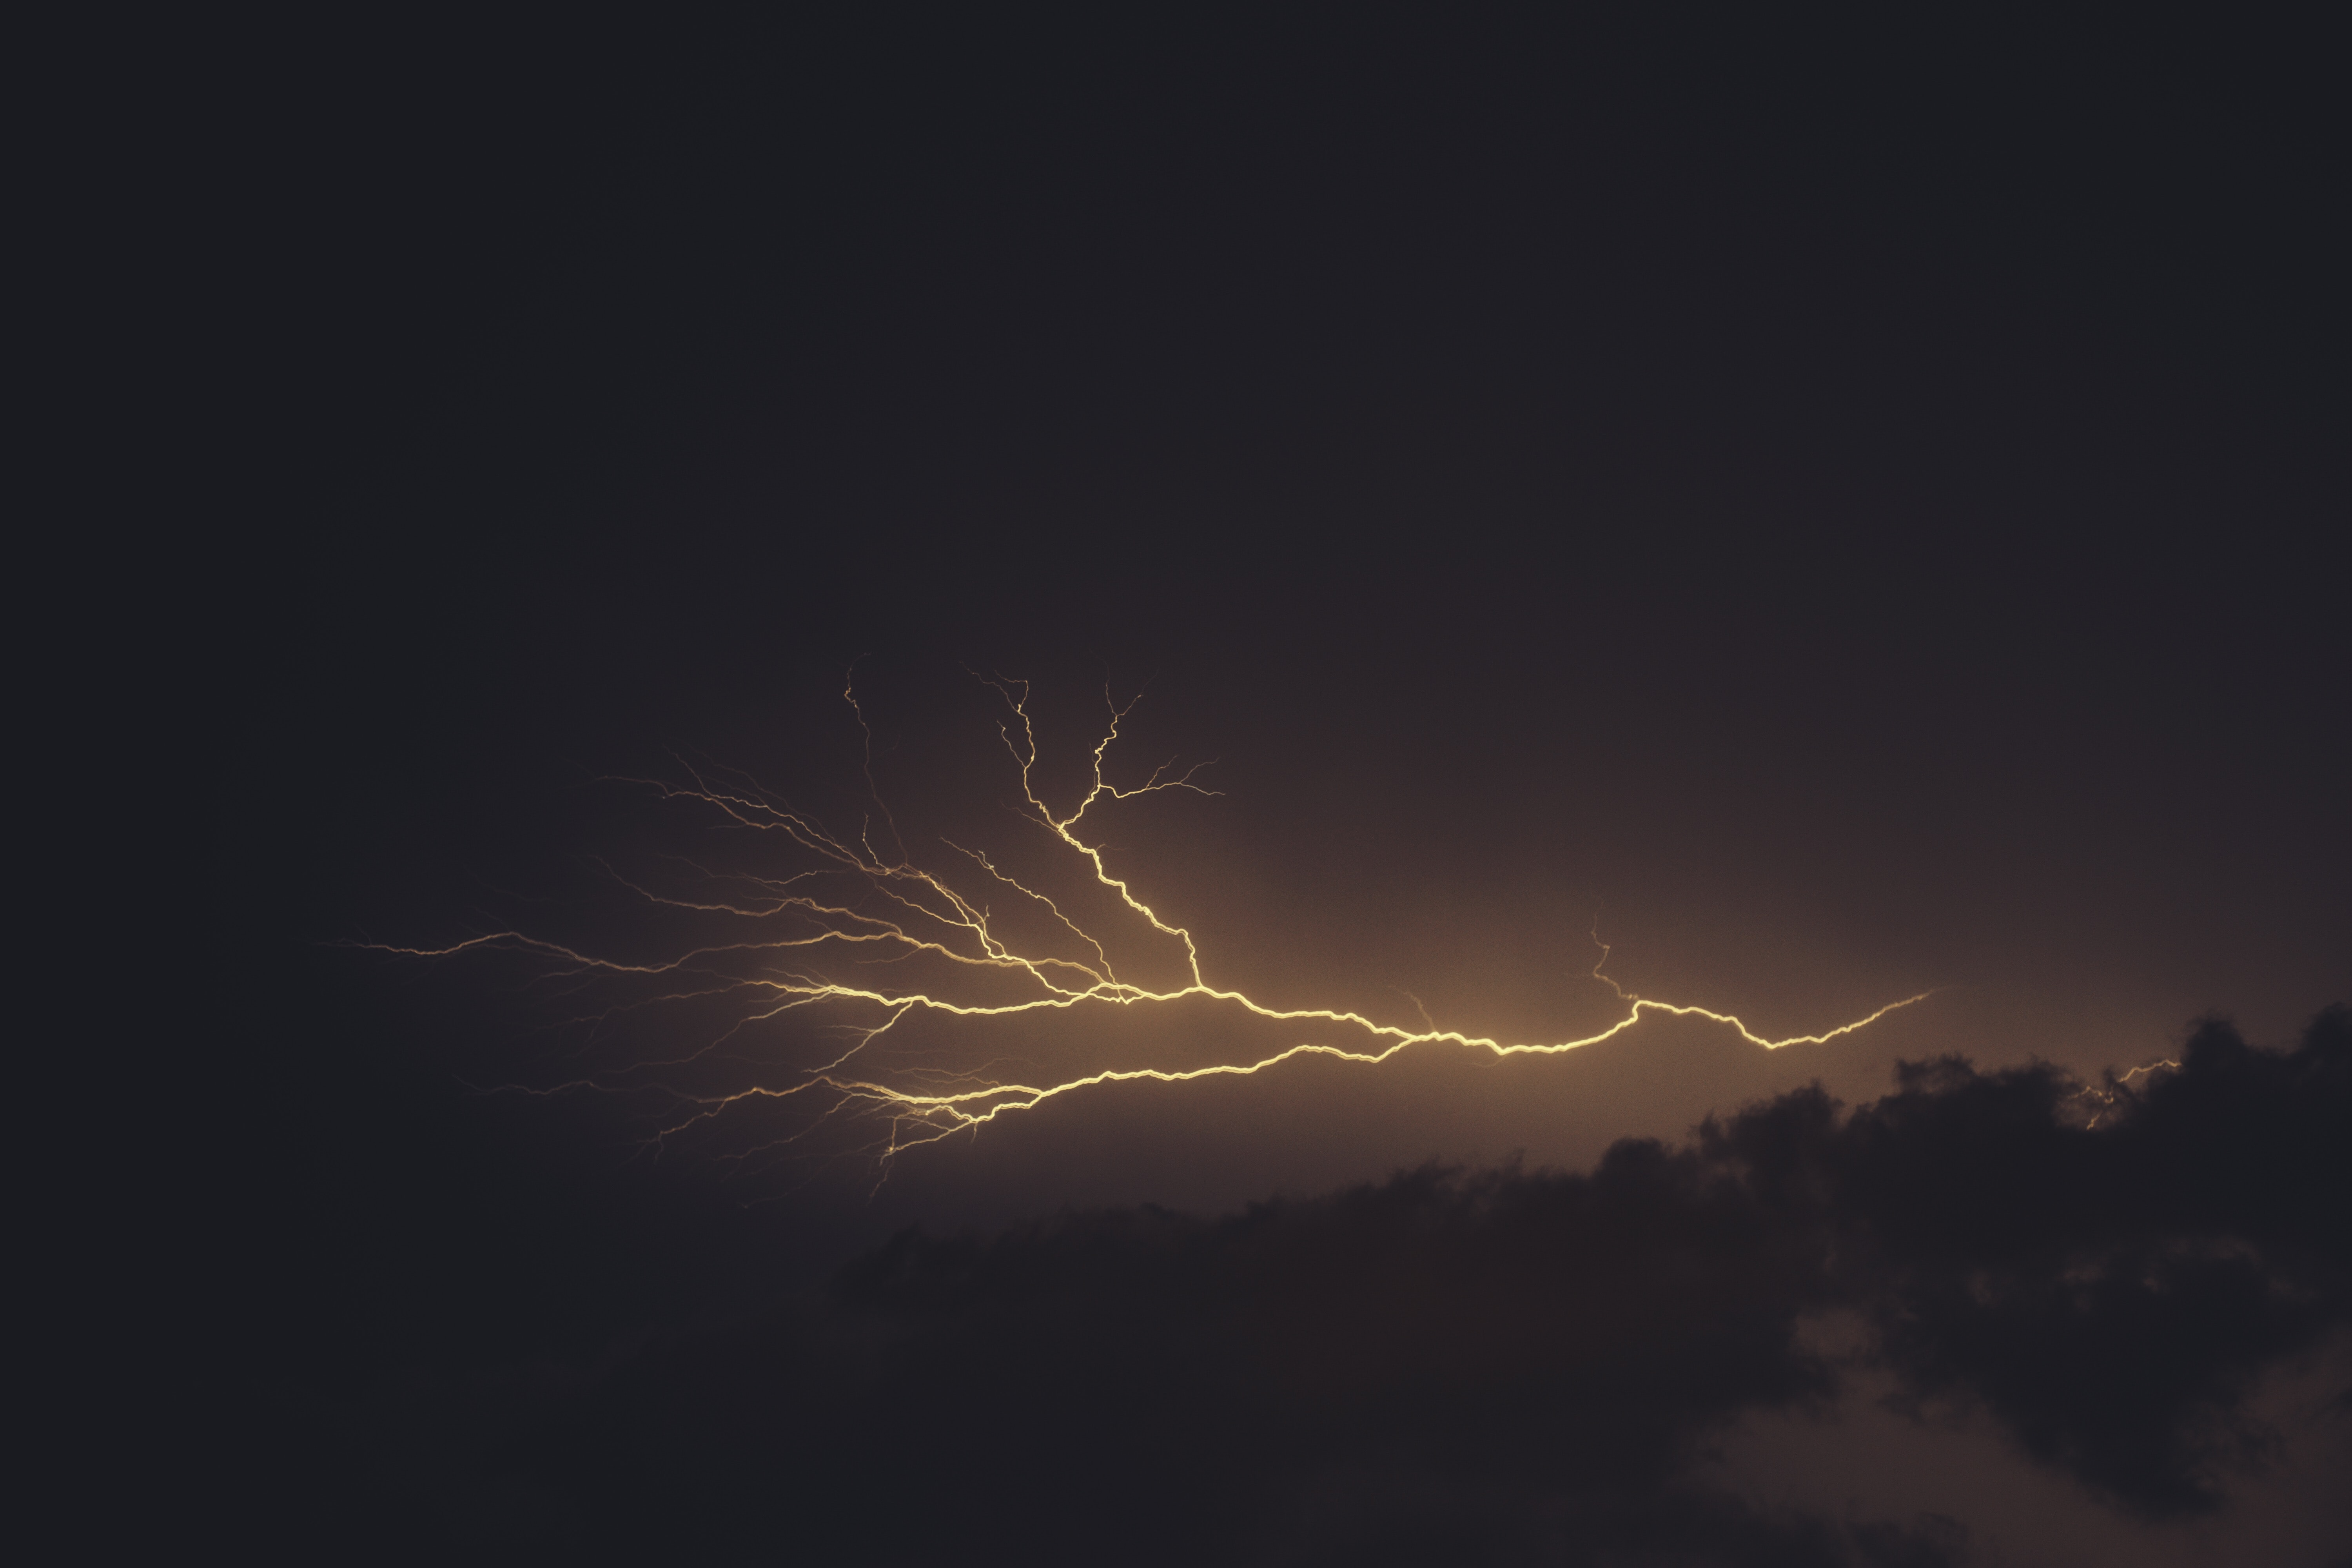 time-lapse photography of thunder